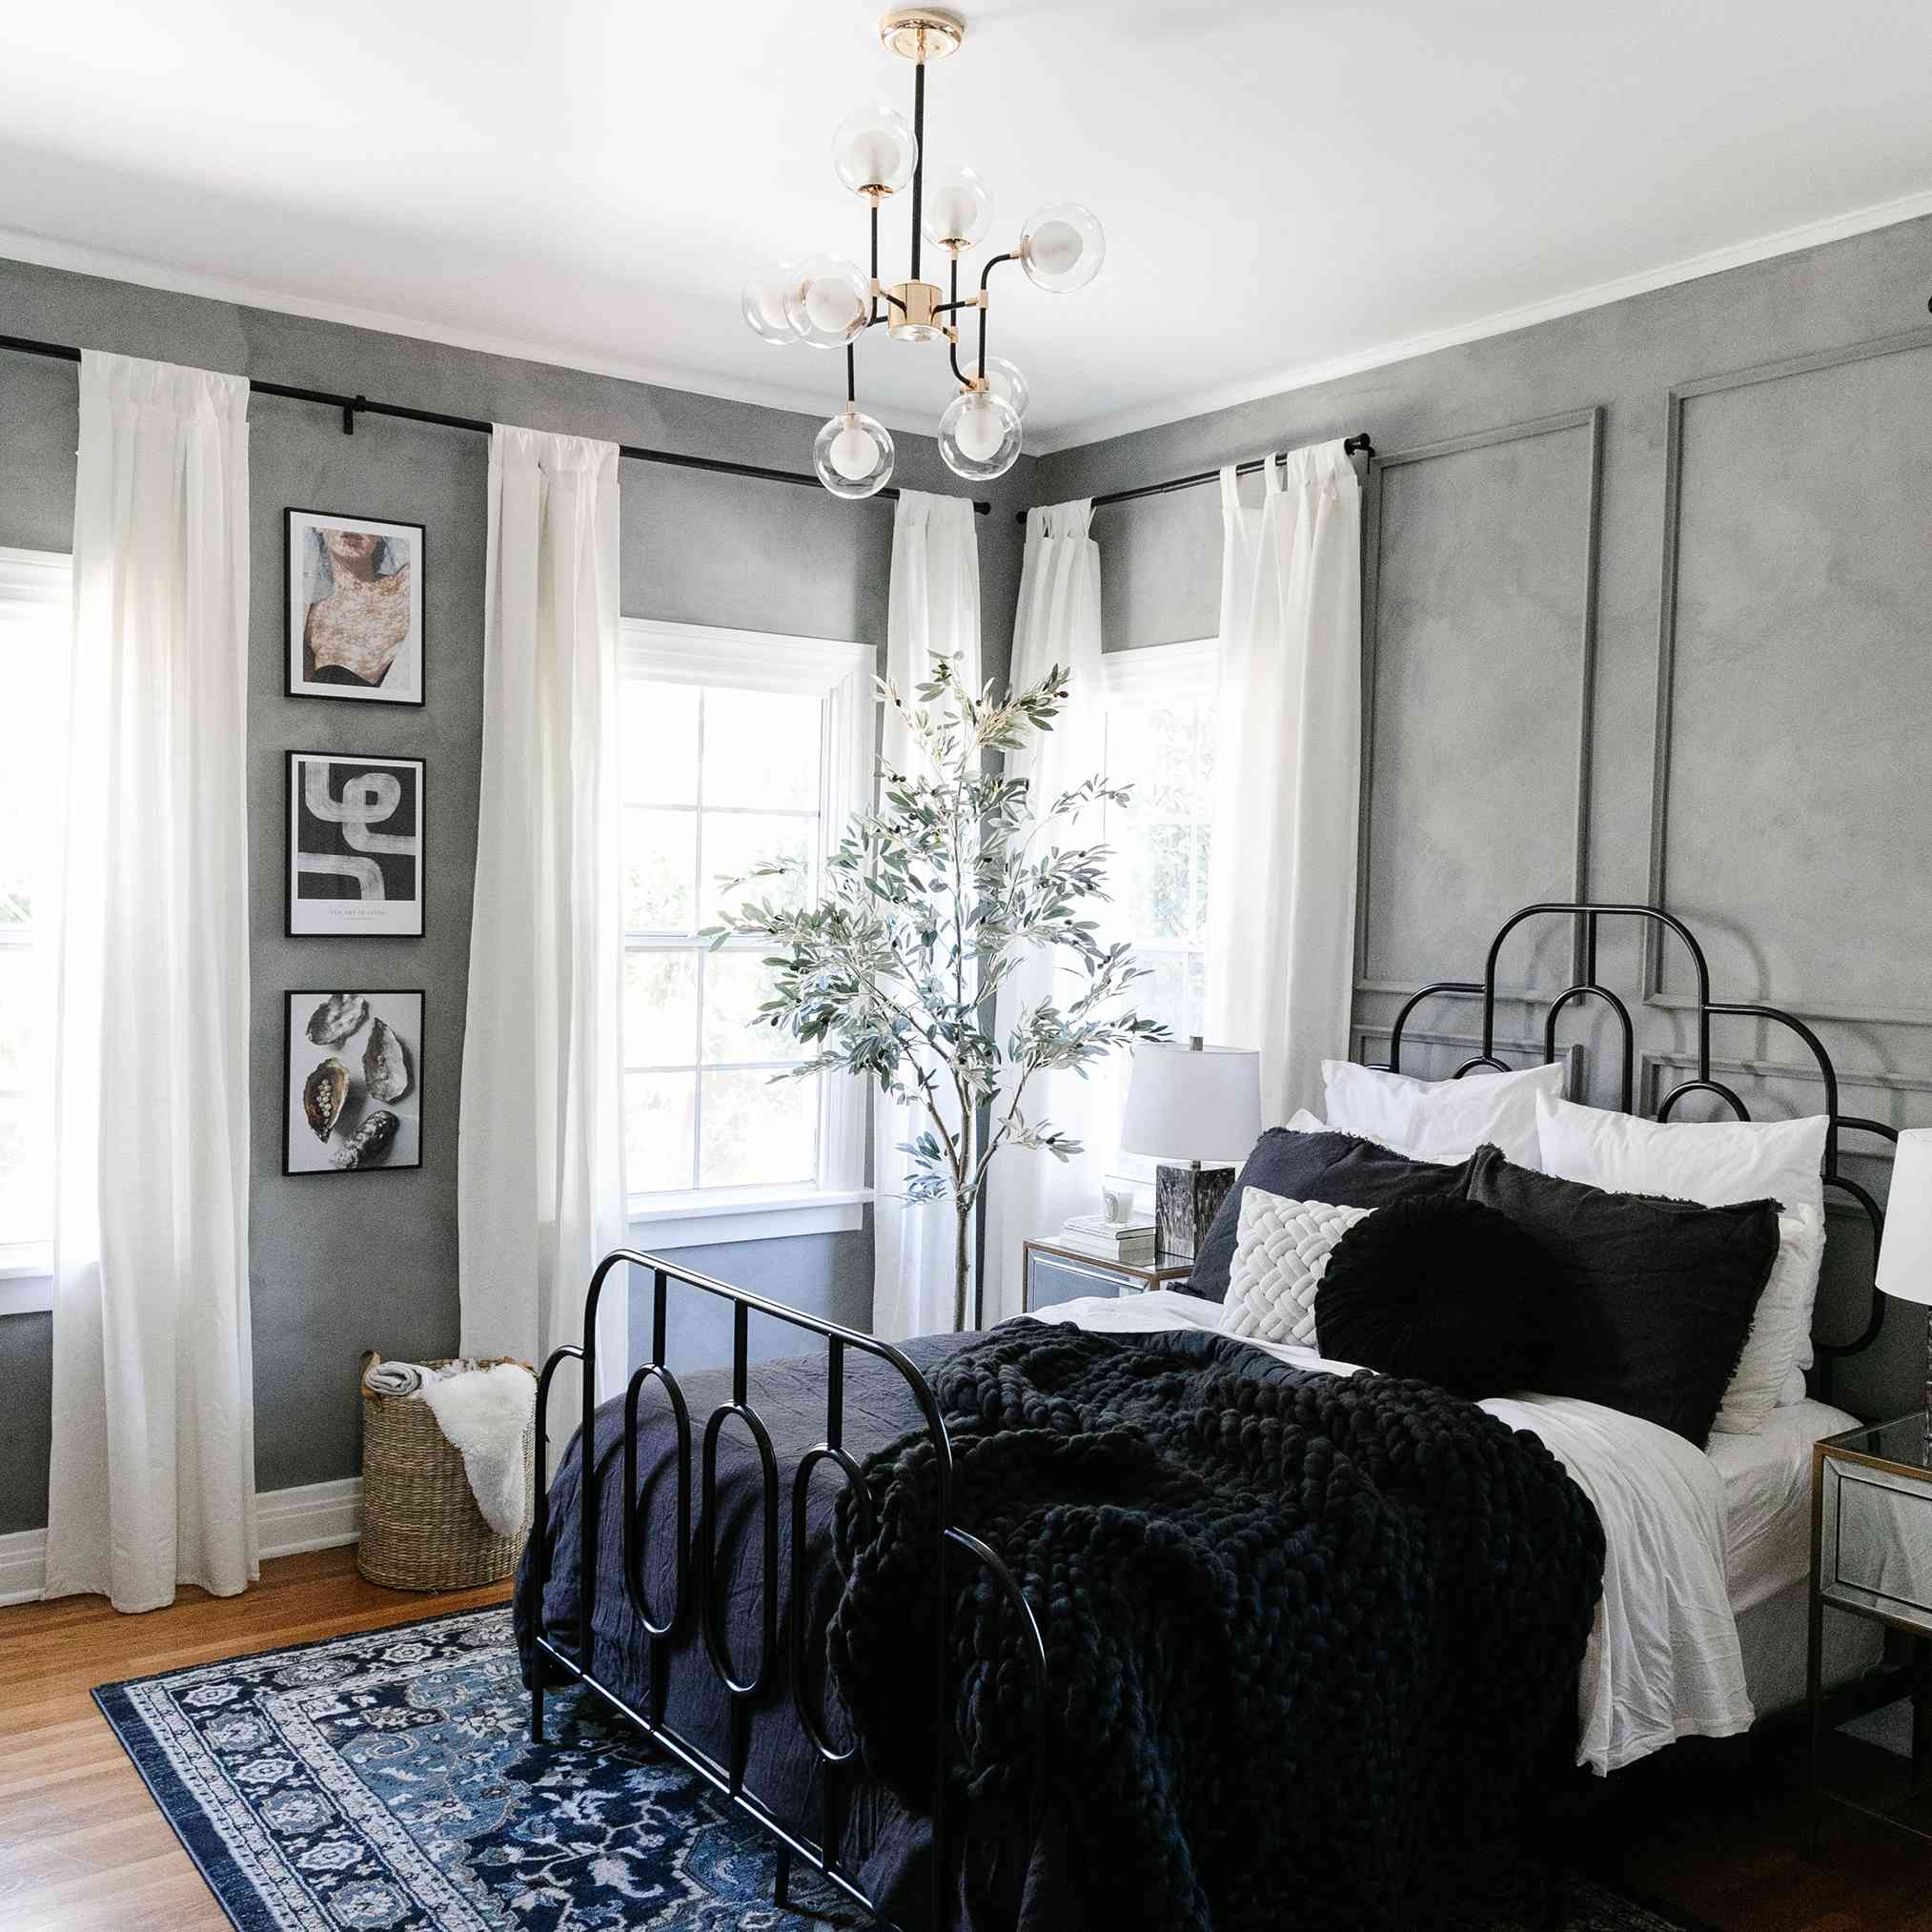 gray paint on the walls of the bedroom in drew scott's apartment